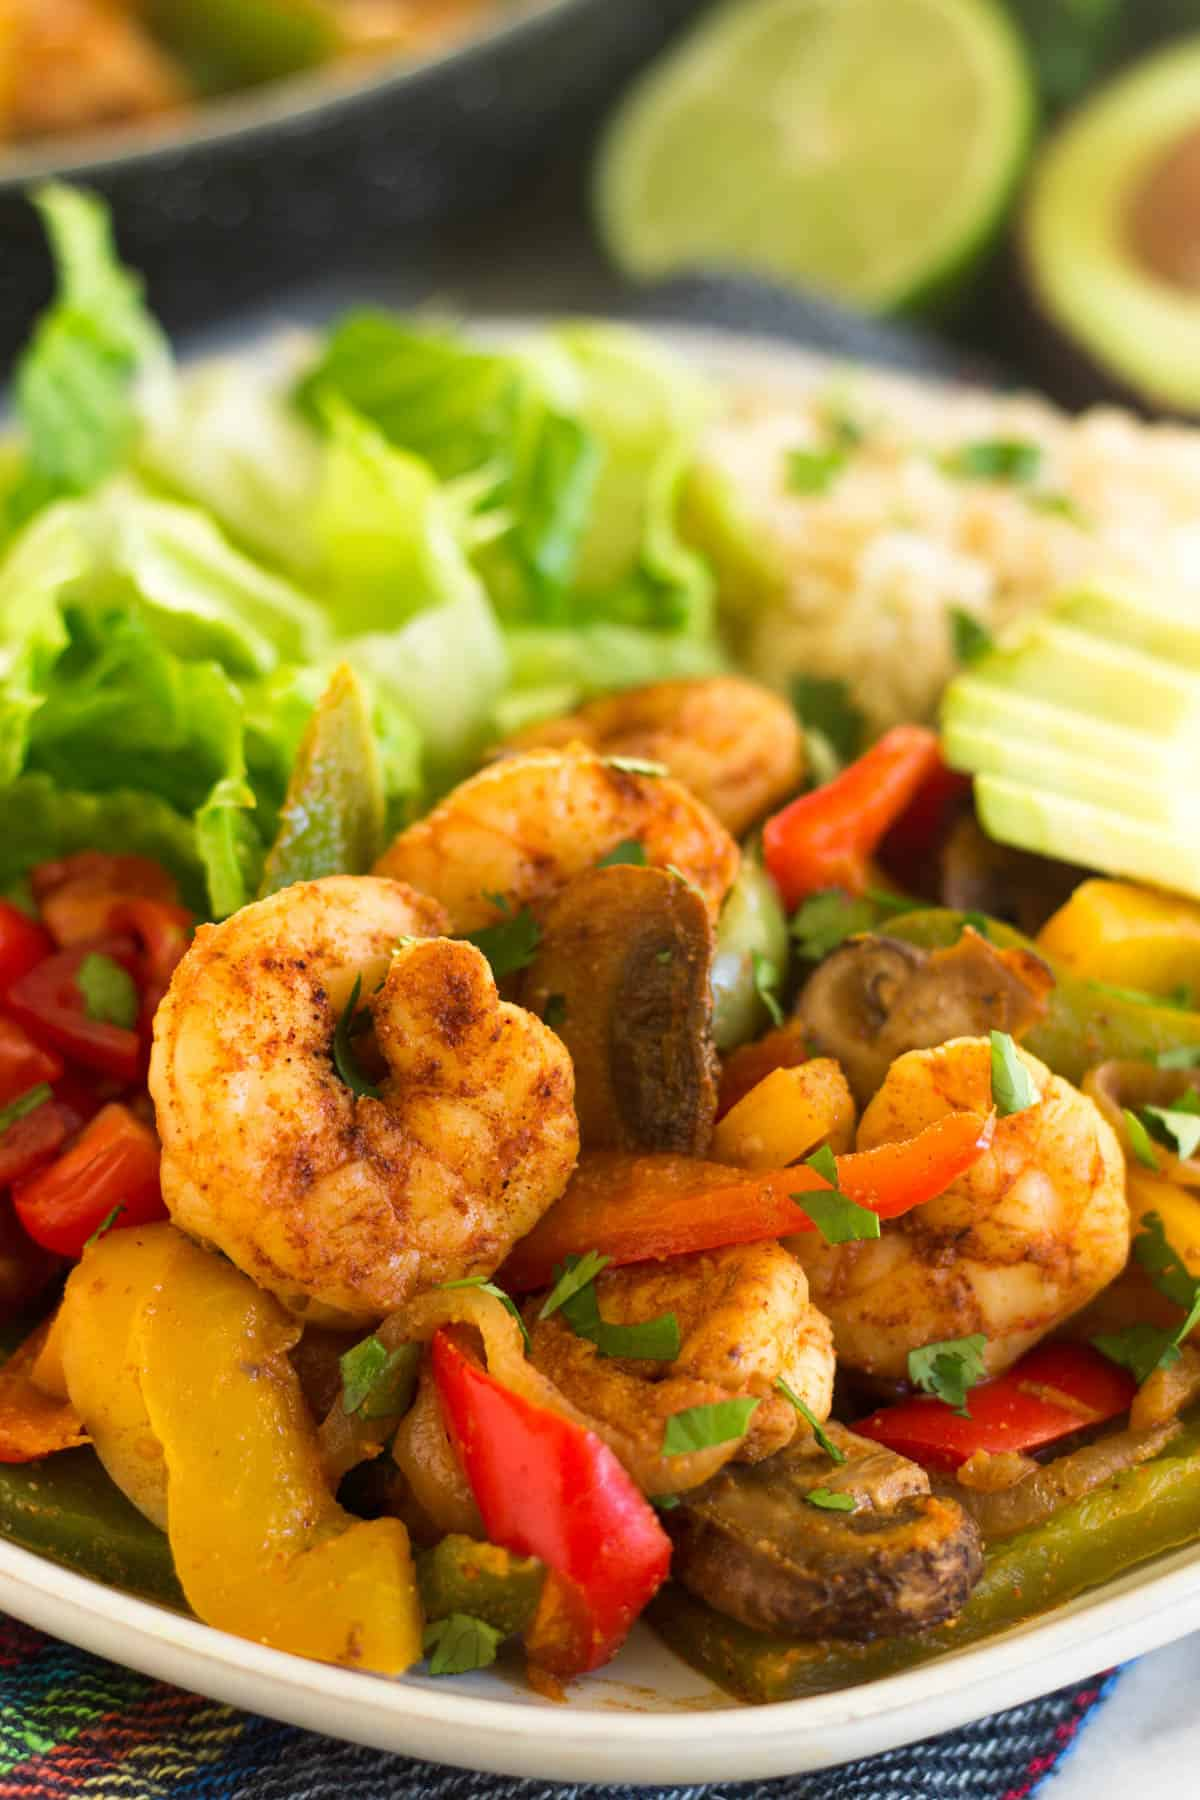 Close up of a plate with shrimp fajitas and sides